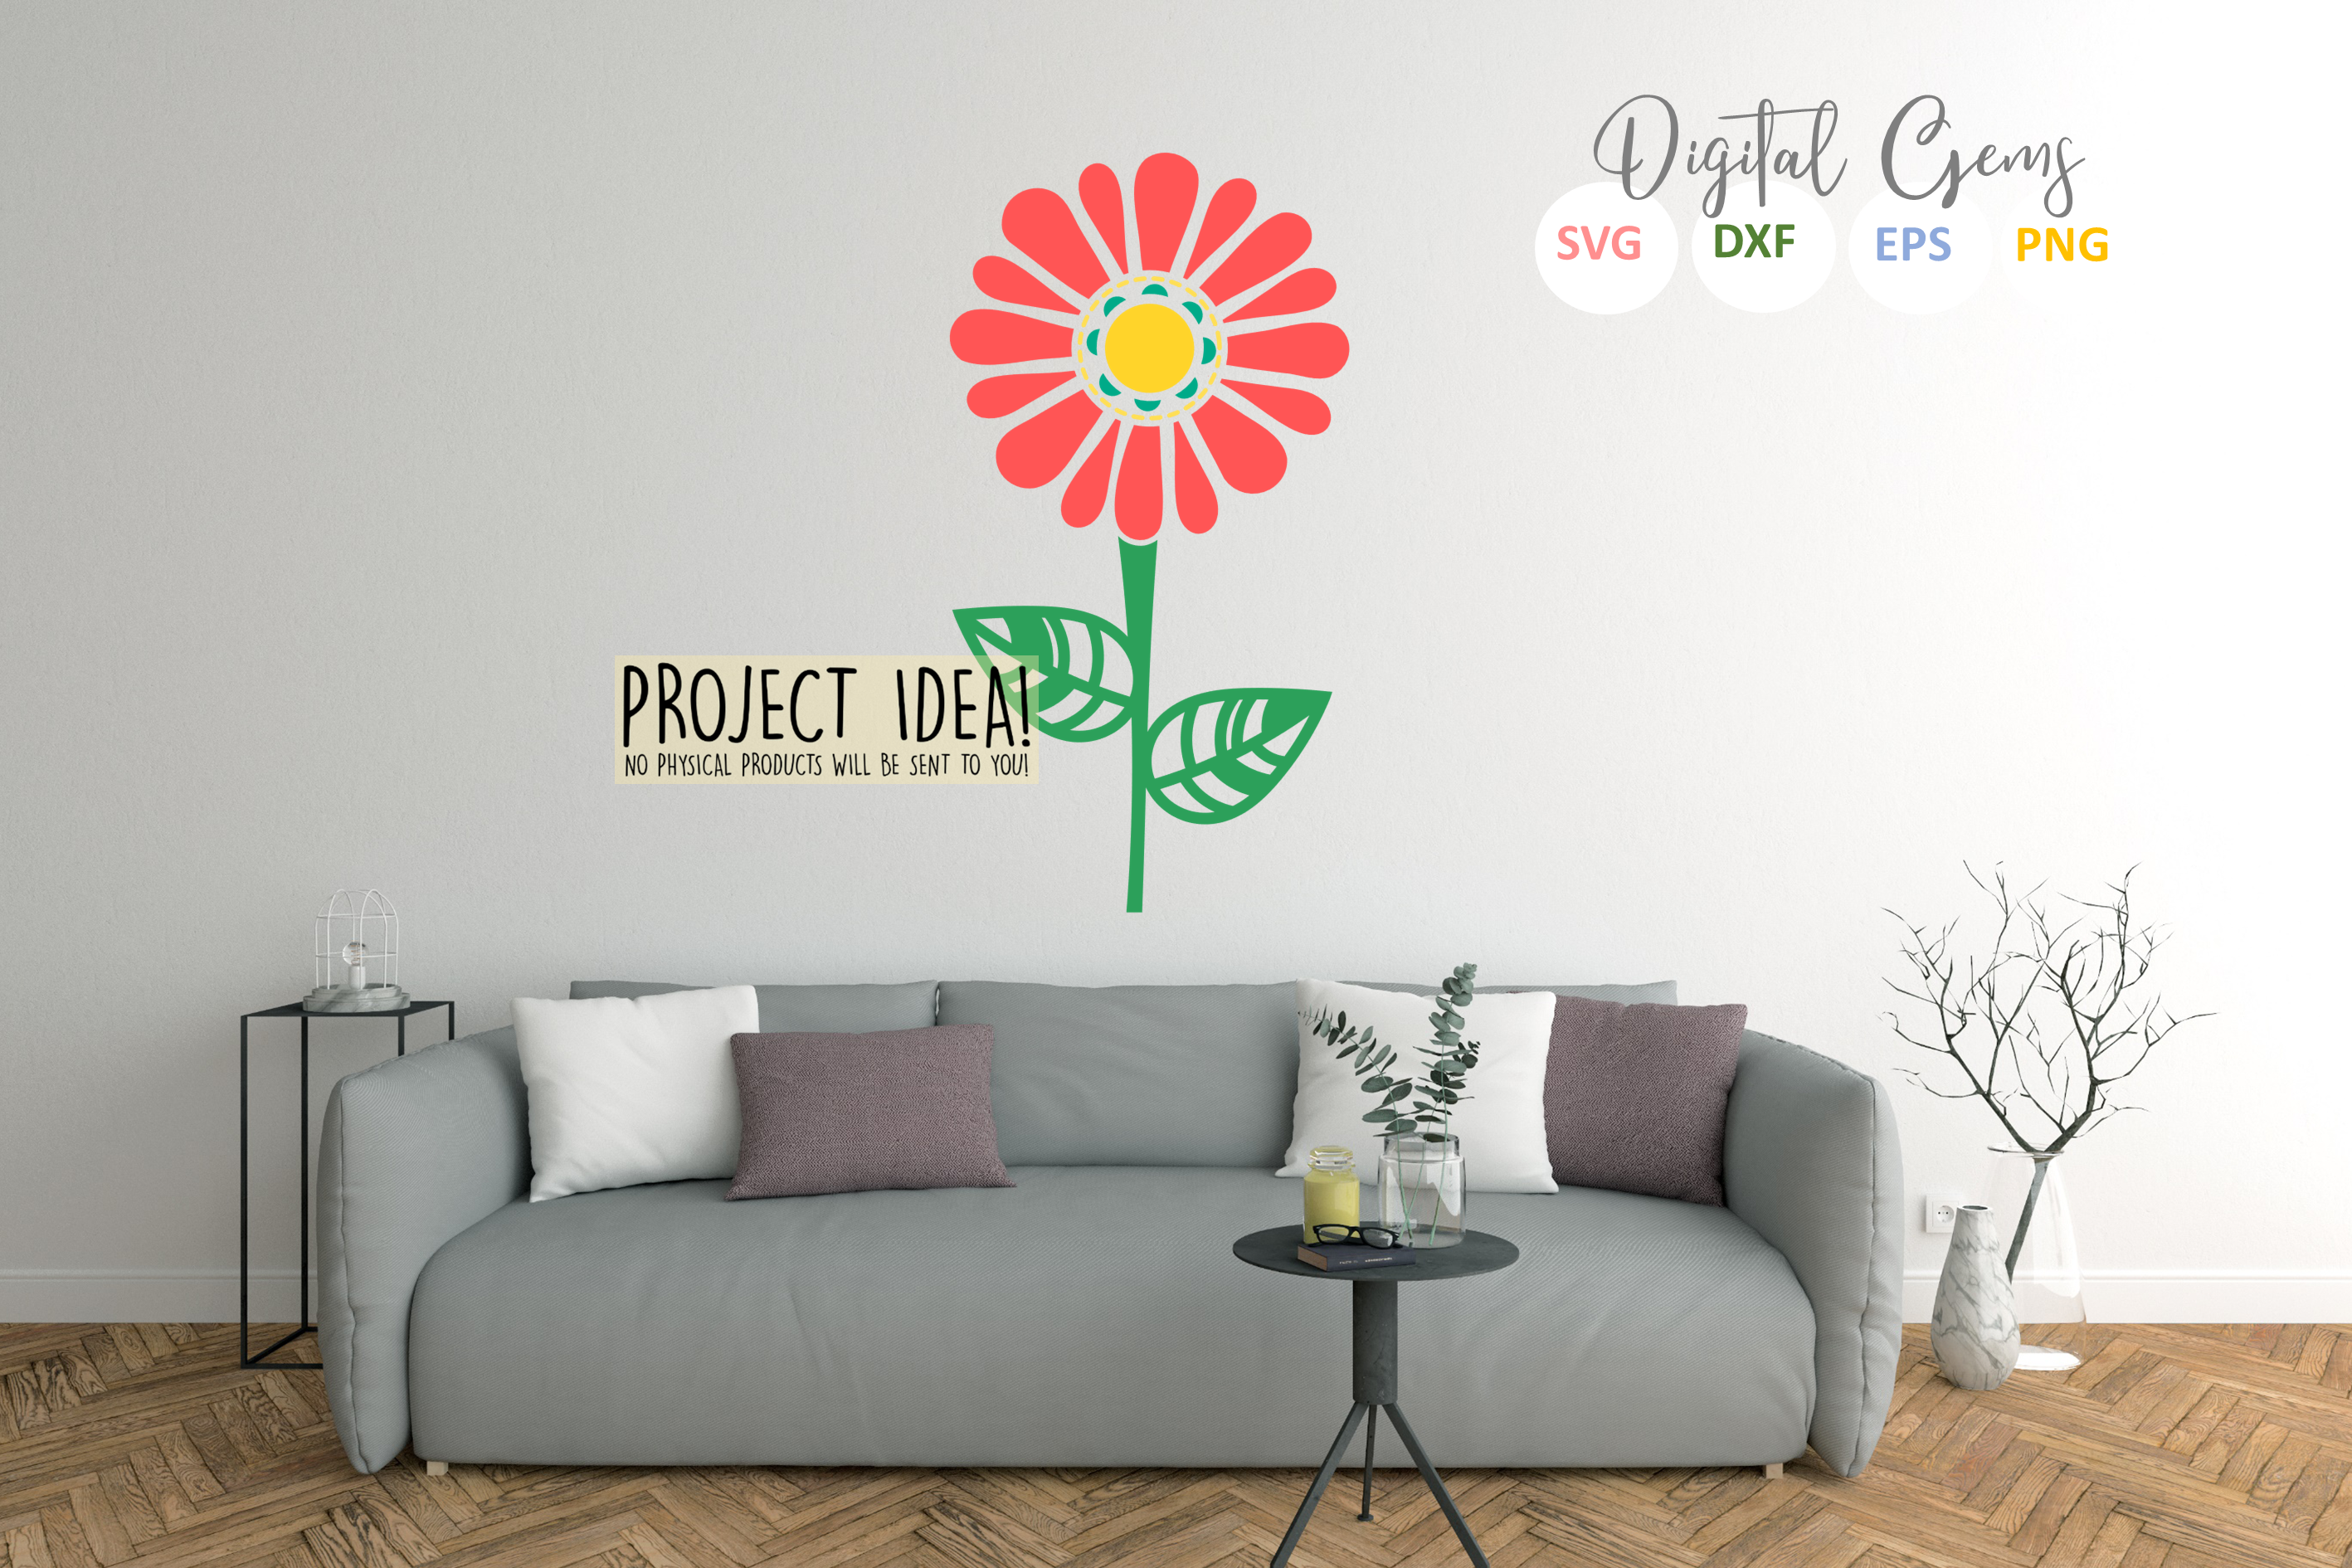 Flower SVG / DXF / EPS / PNG files example image 5